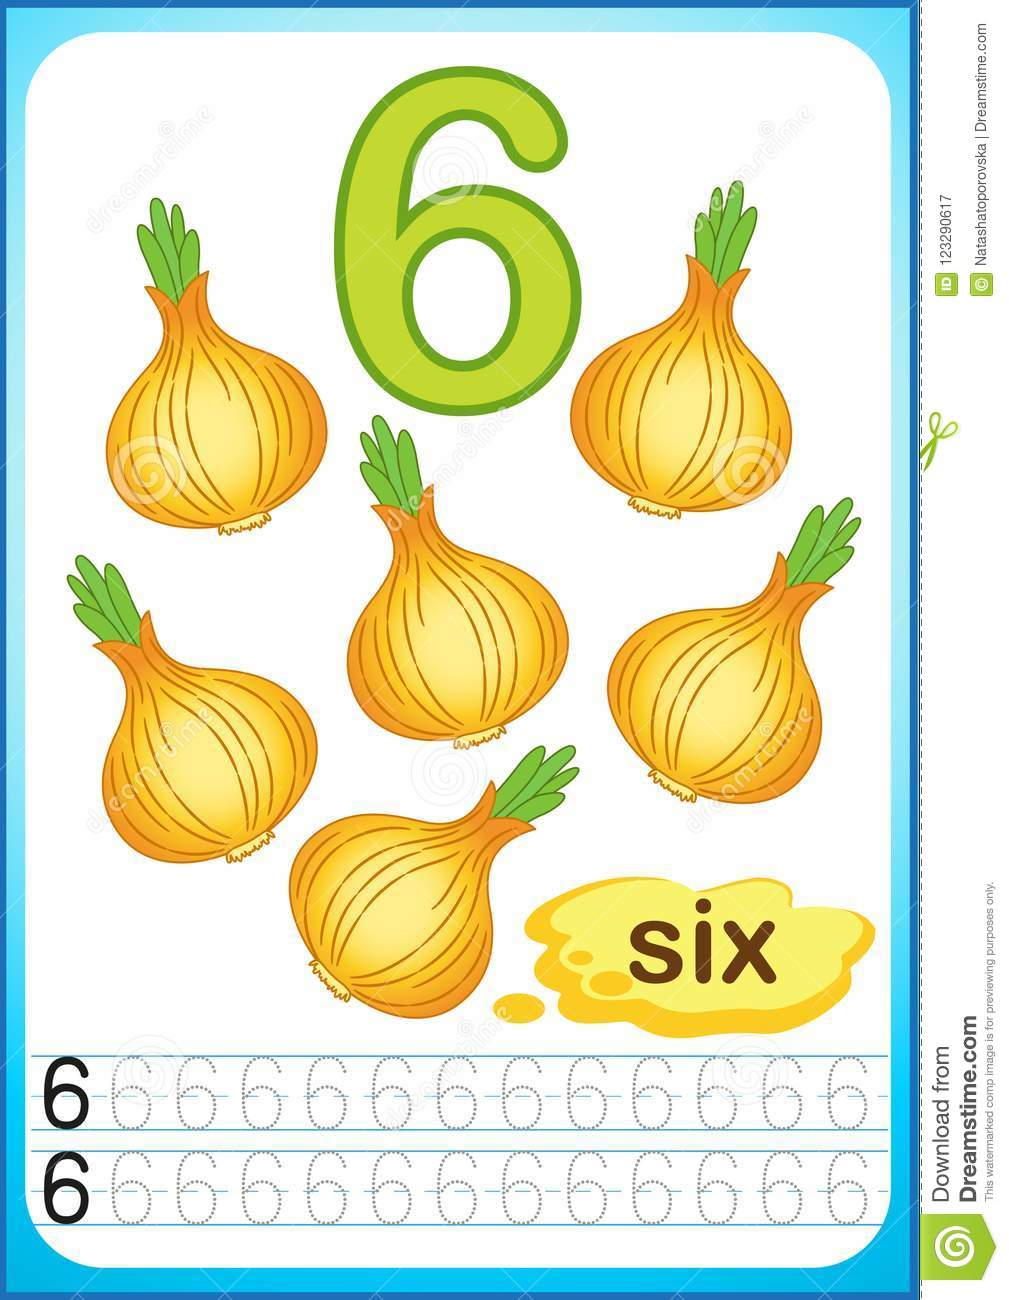 graphic relating to Vegetable Printable titled Printable Worksheet For Kindergarten And Preschool